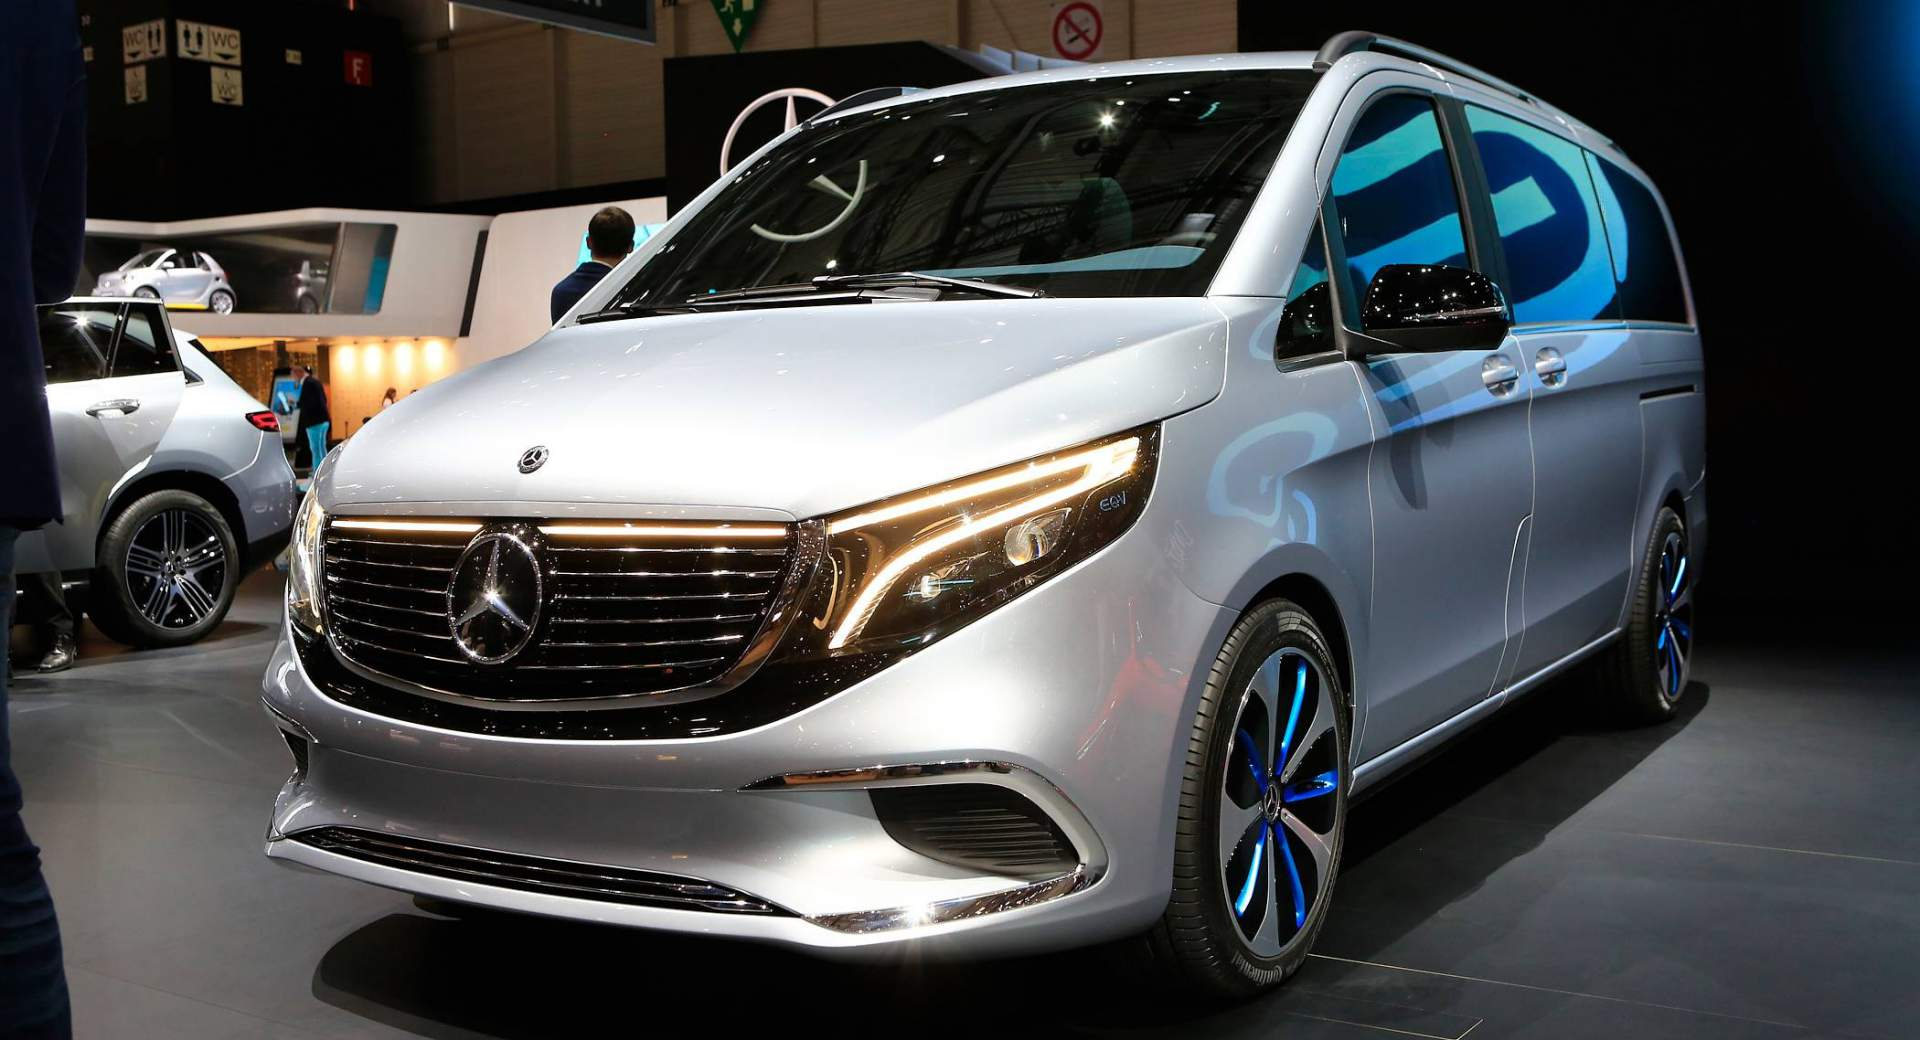 Mercedes Benz Minivan >> Mercedes Concept EQV Heralds Electric V-Class Arriving ...